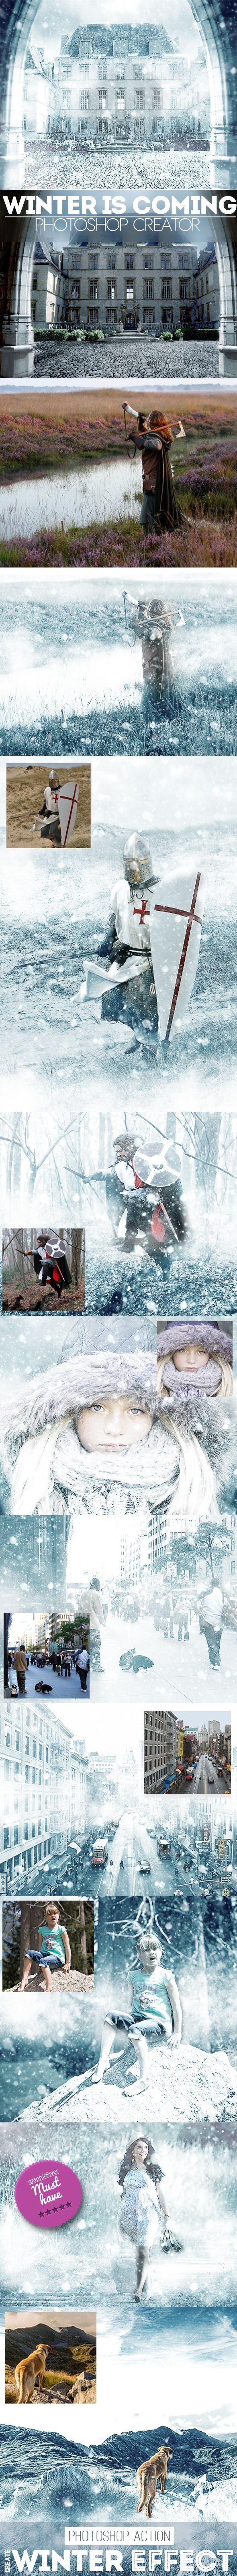 Winter is Coming Photoshop Snowing Effect Action - Photo Effects Actions